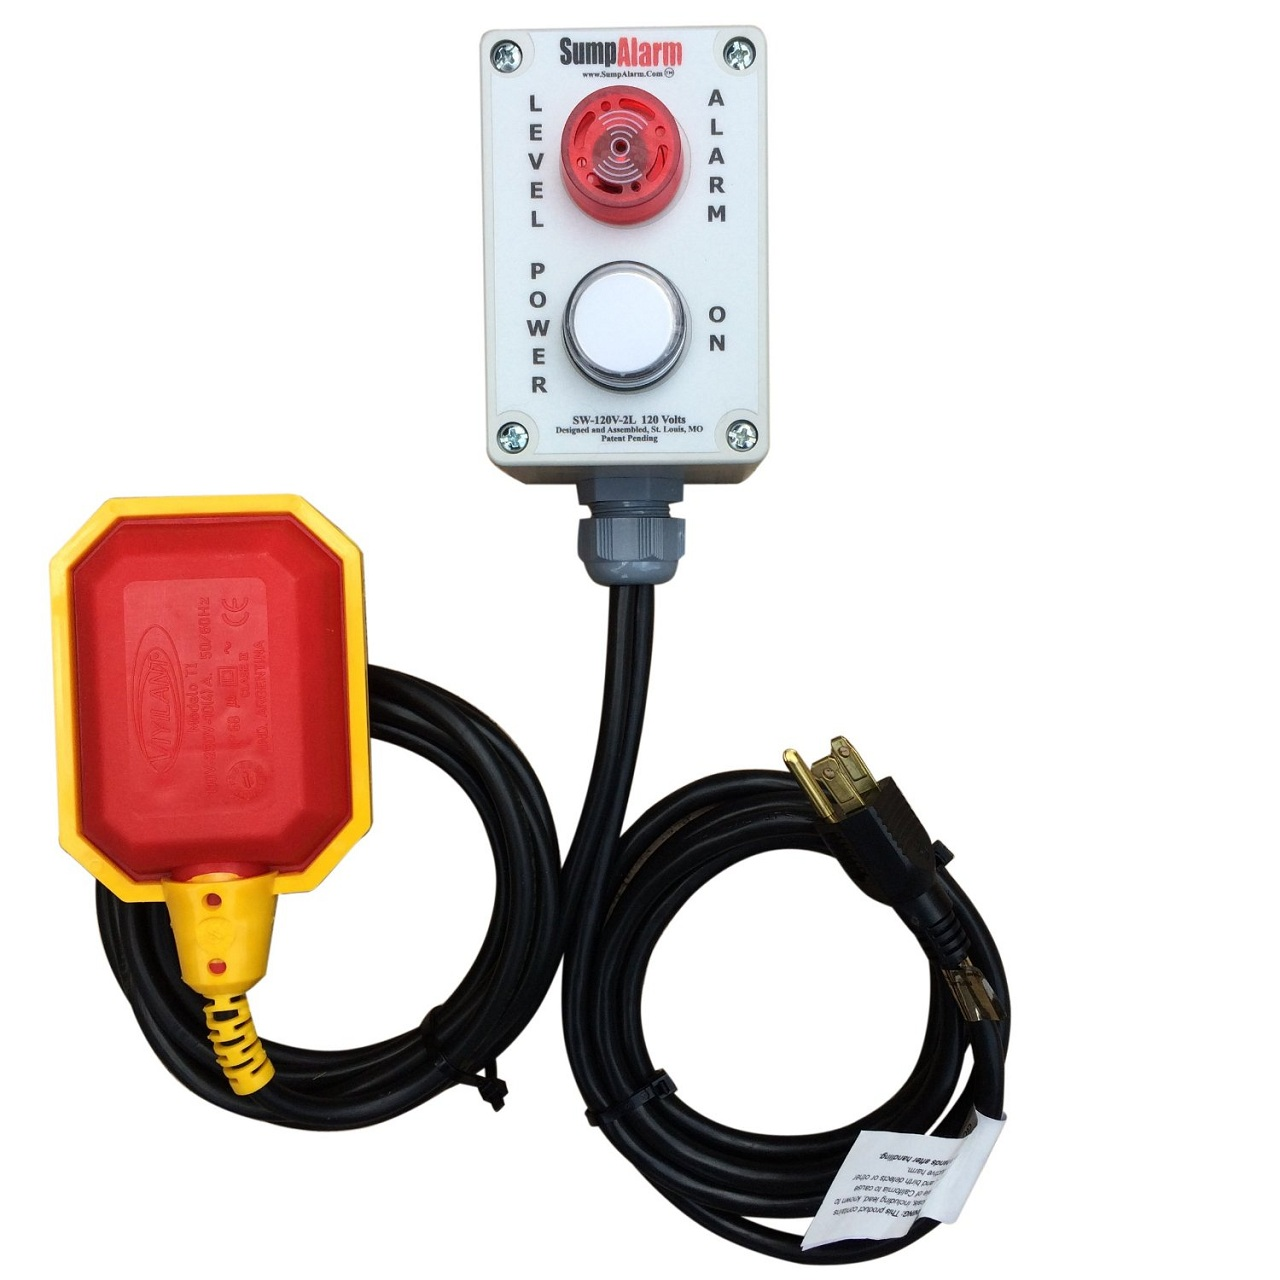 Best sump pump backup system - In Outdoor High Water Alarm W Pilot Light And Horn For Septic Sump Pond Other Applications